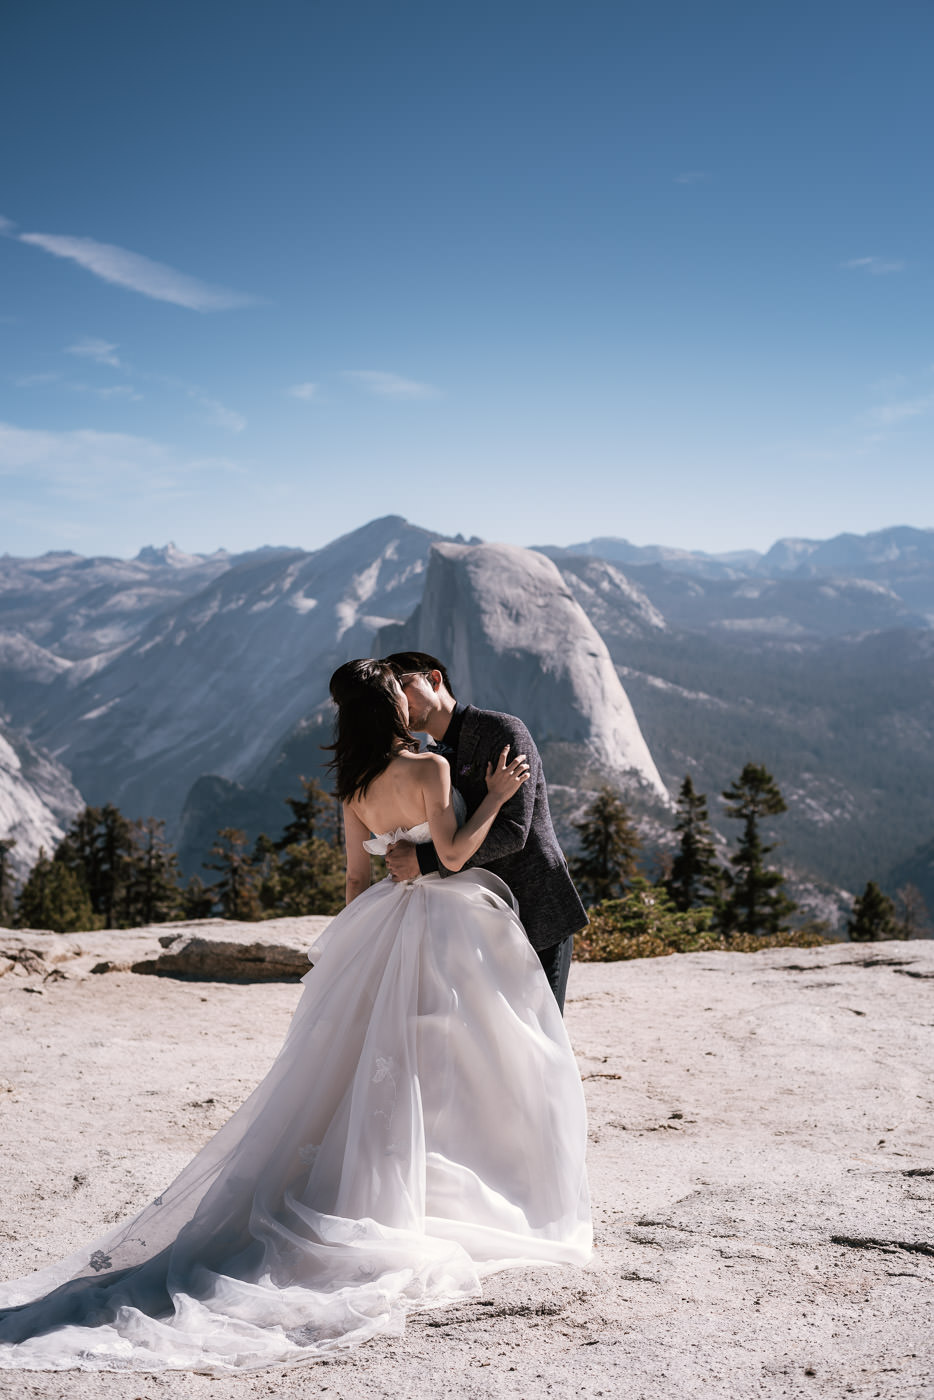 Wedding ceremony at Sentinel Dome in Yosemite National Park.